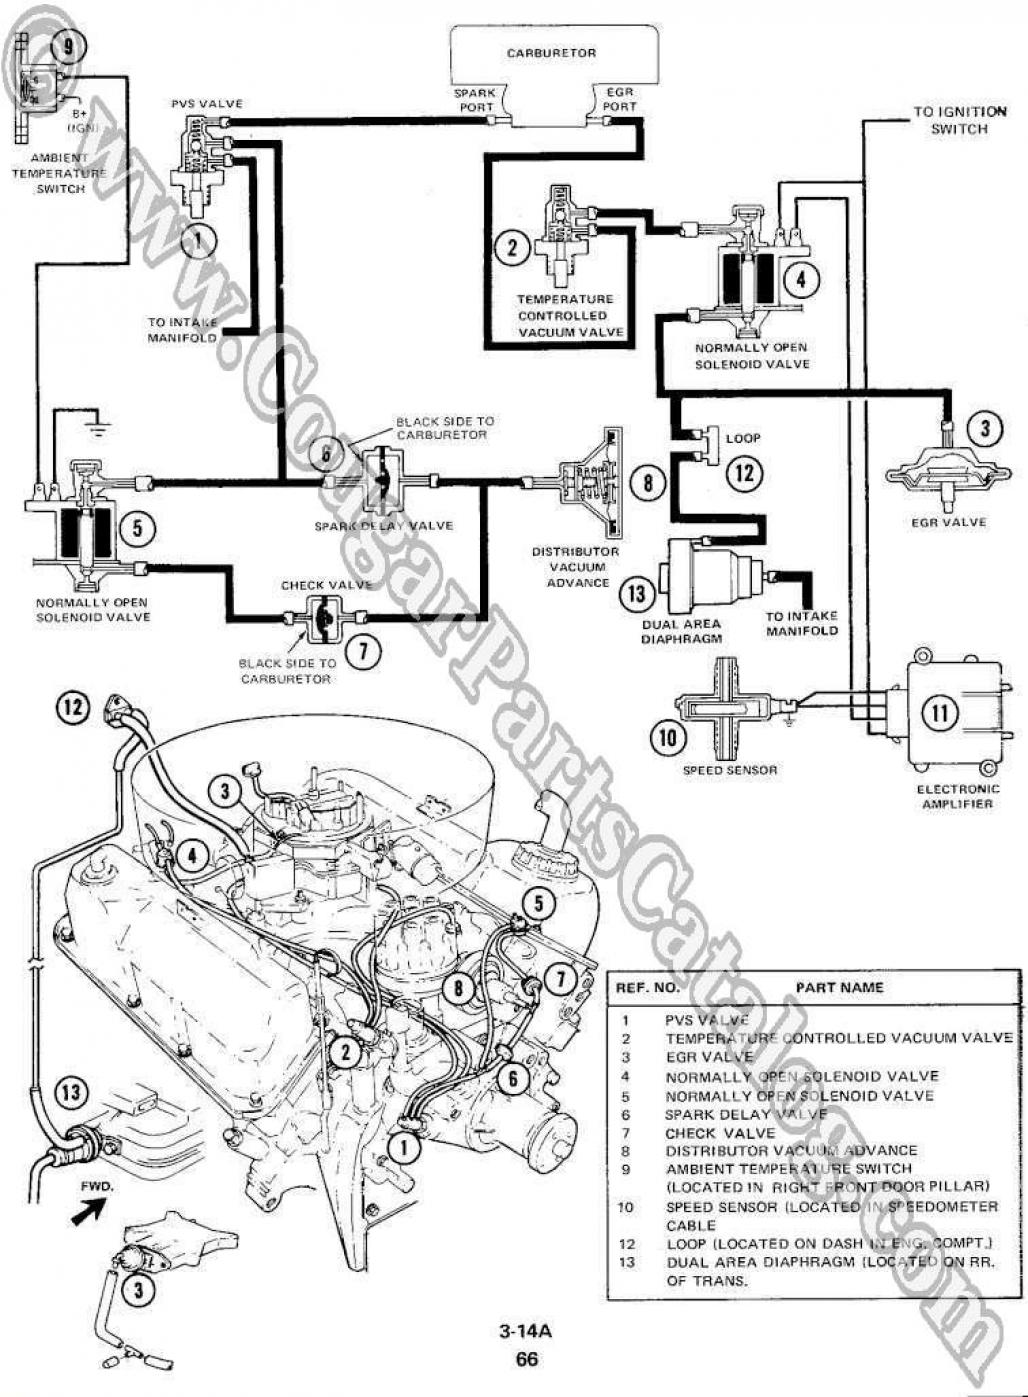 68 Ford 302 Engine Diagram Another Blog About Wiring Pin Trailer Plug Additionally 1965 Mustang 289 Get Free Image